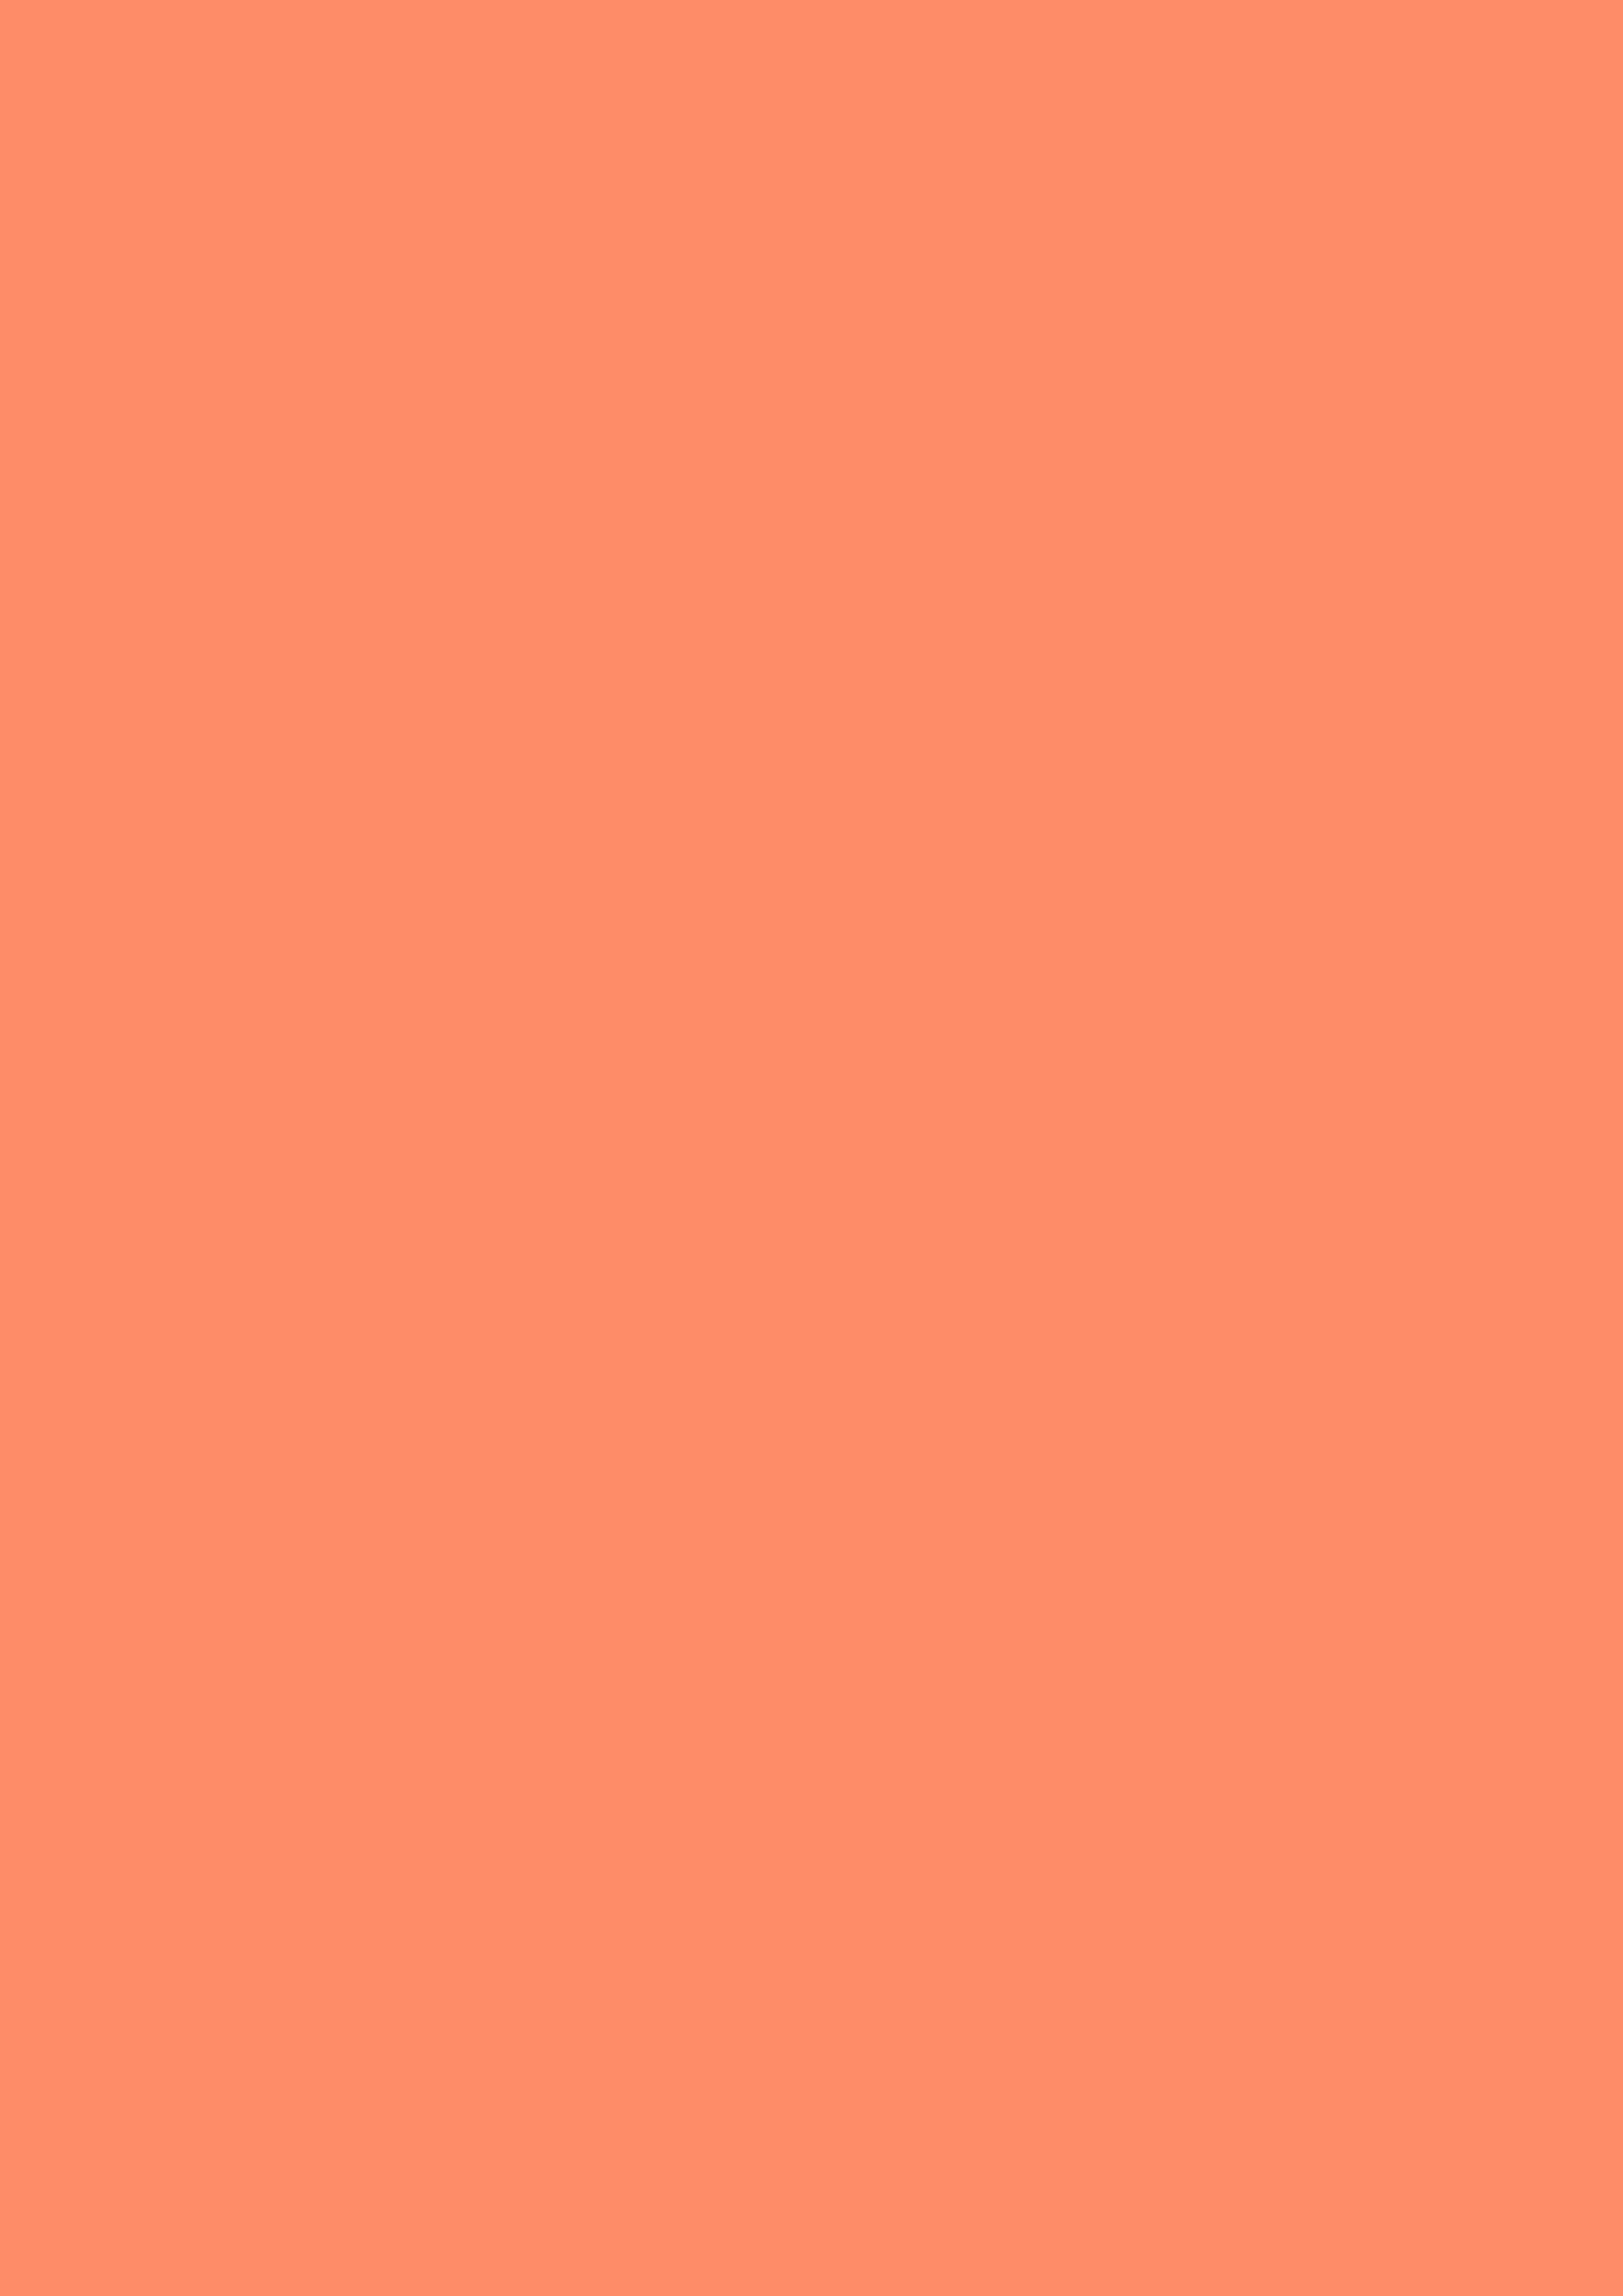 2480x3508 Salmon Solid Color Background